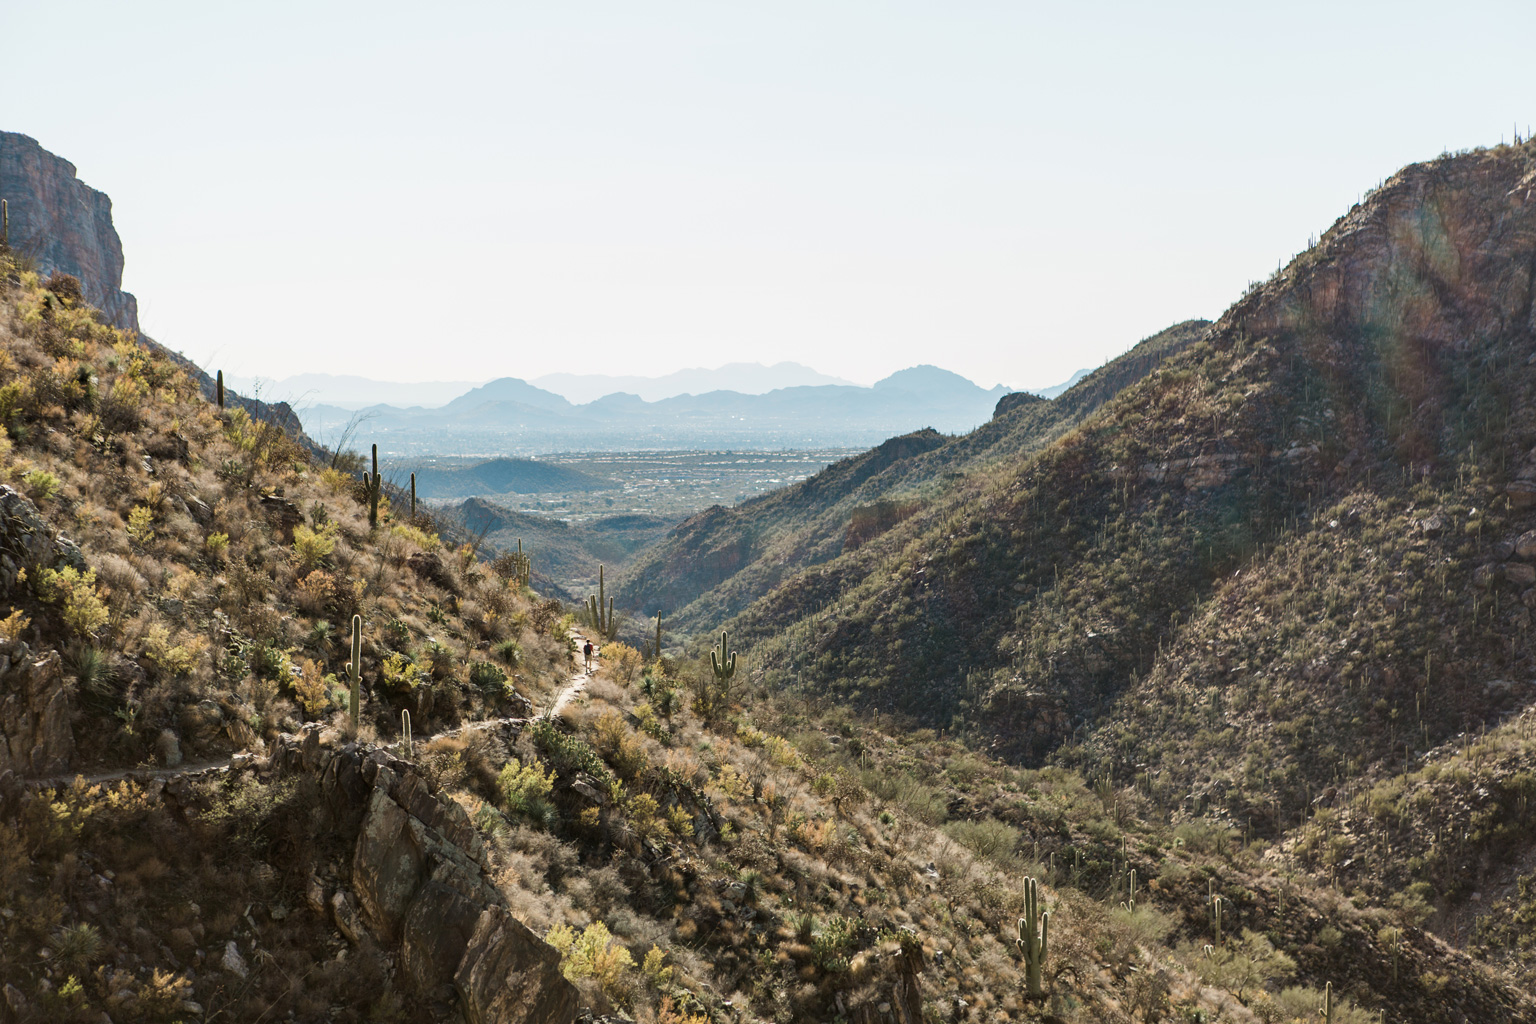 CindyGiovagnoli_Tucson_Arizona_Sabino_Canyon_Phone_Line_Trail_Uinta_Brewing_saguaro_cactus_desert_hiking-009.jpg